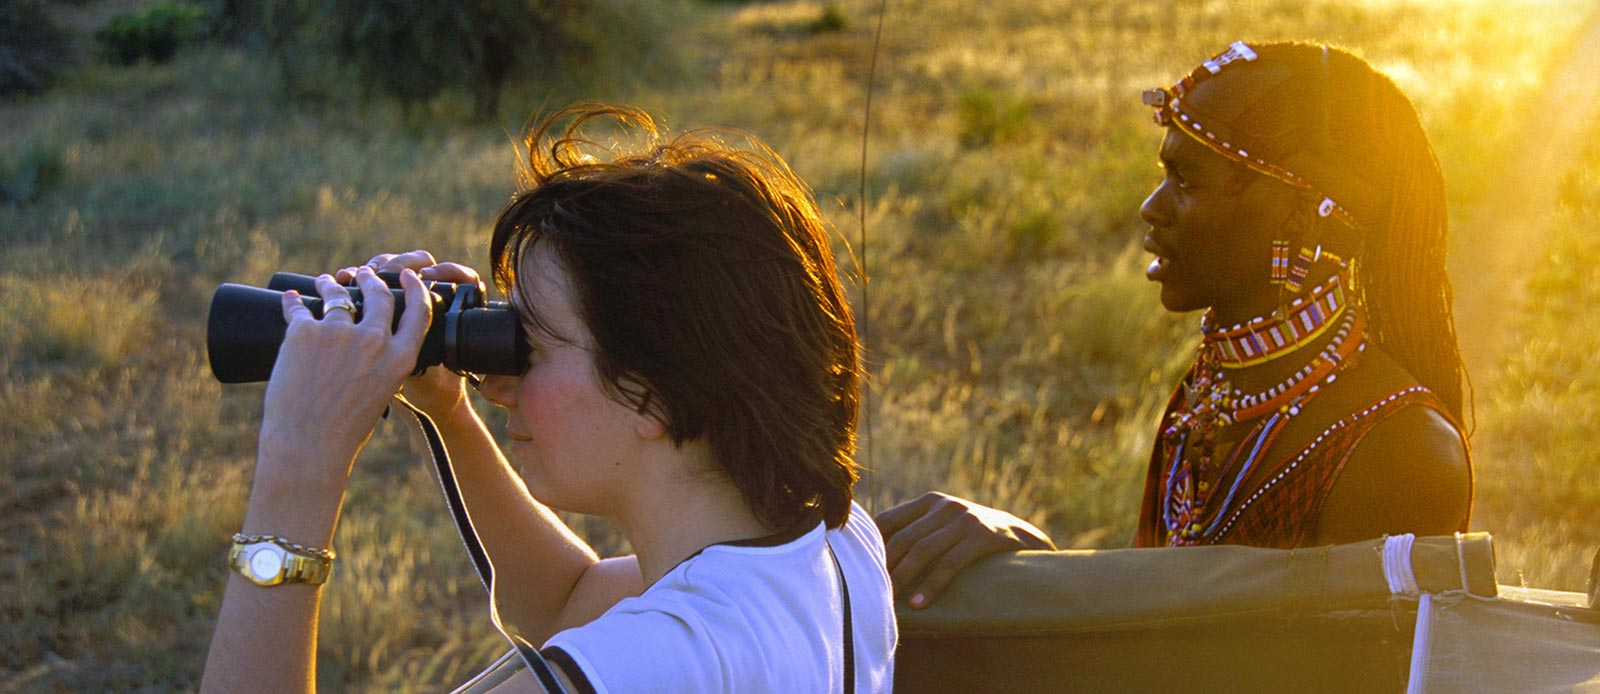 Observing wildlife in East Africa in the company of the Masai